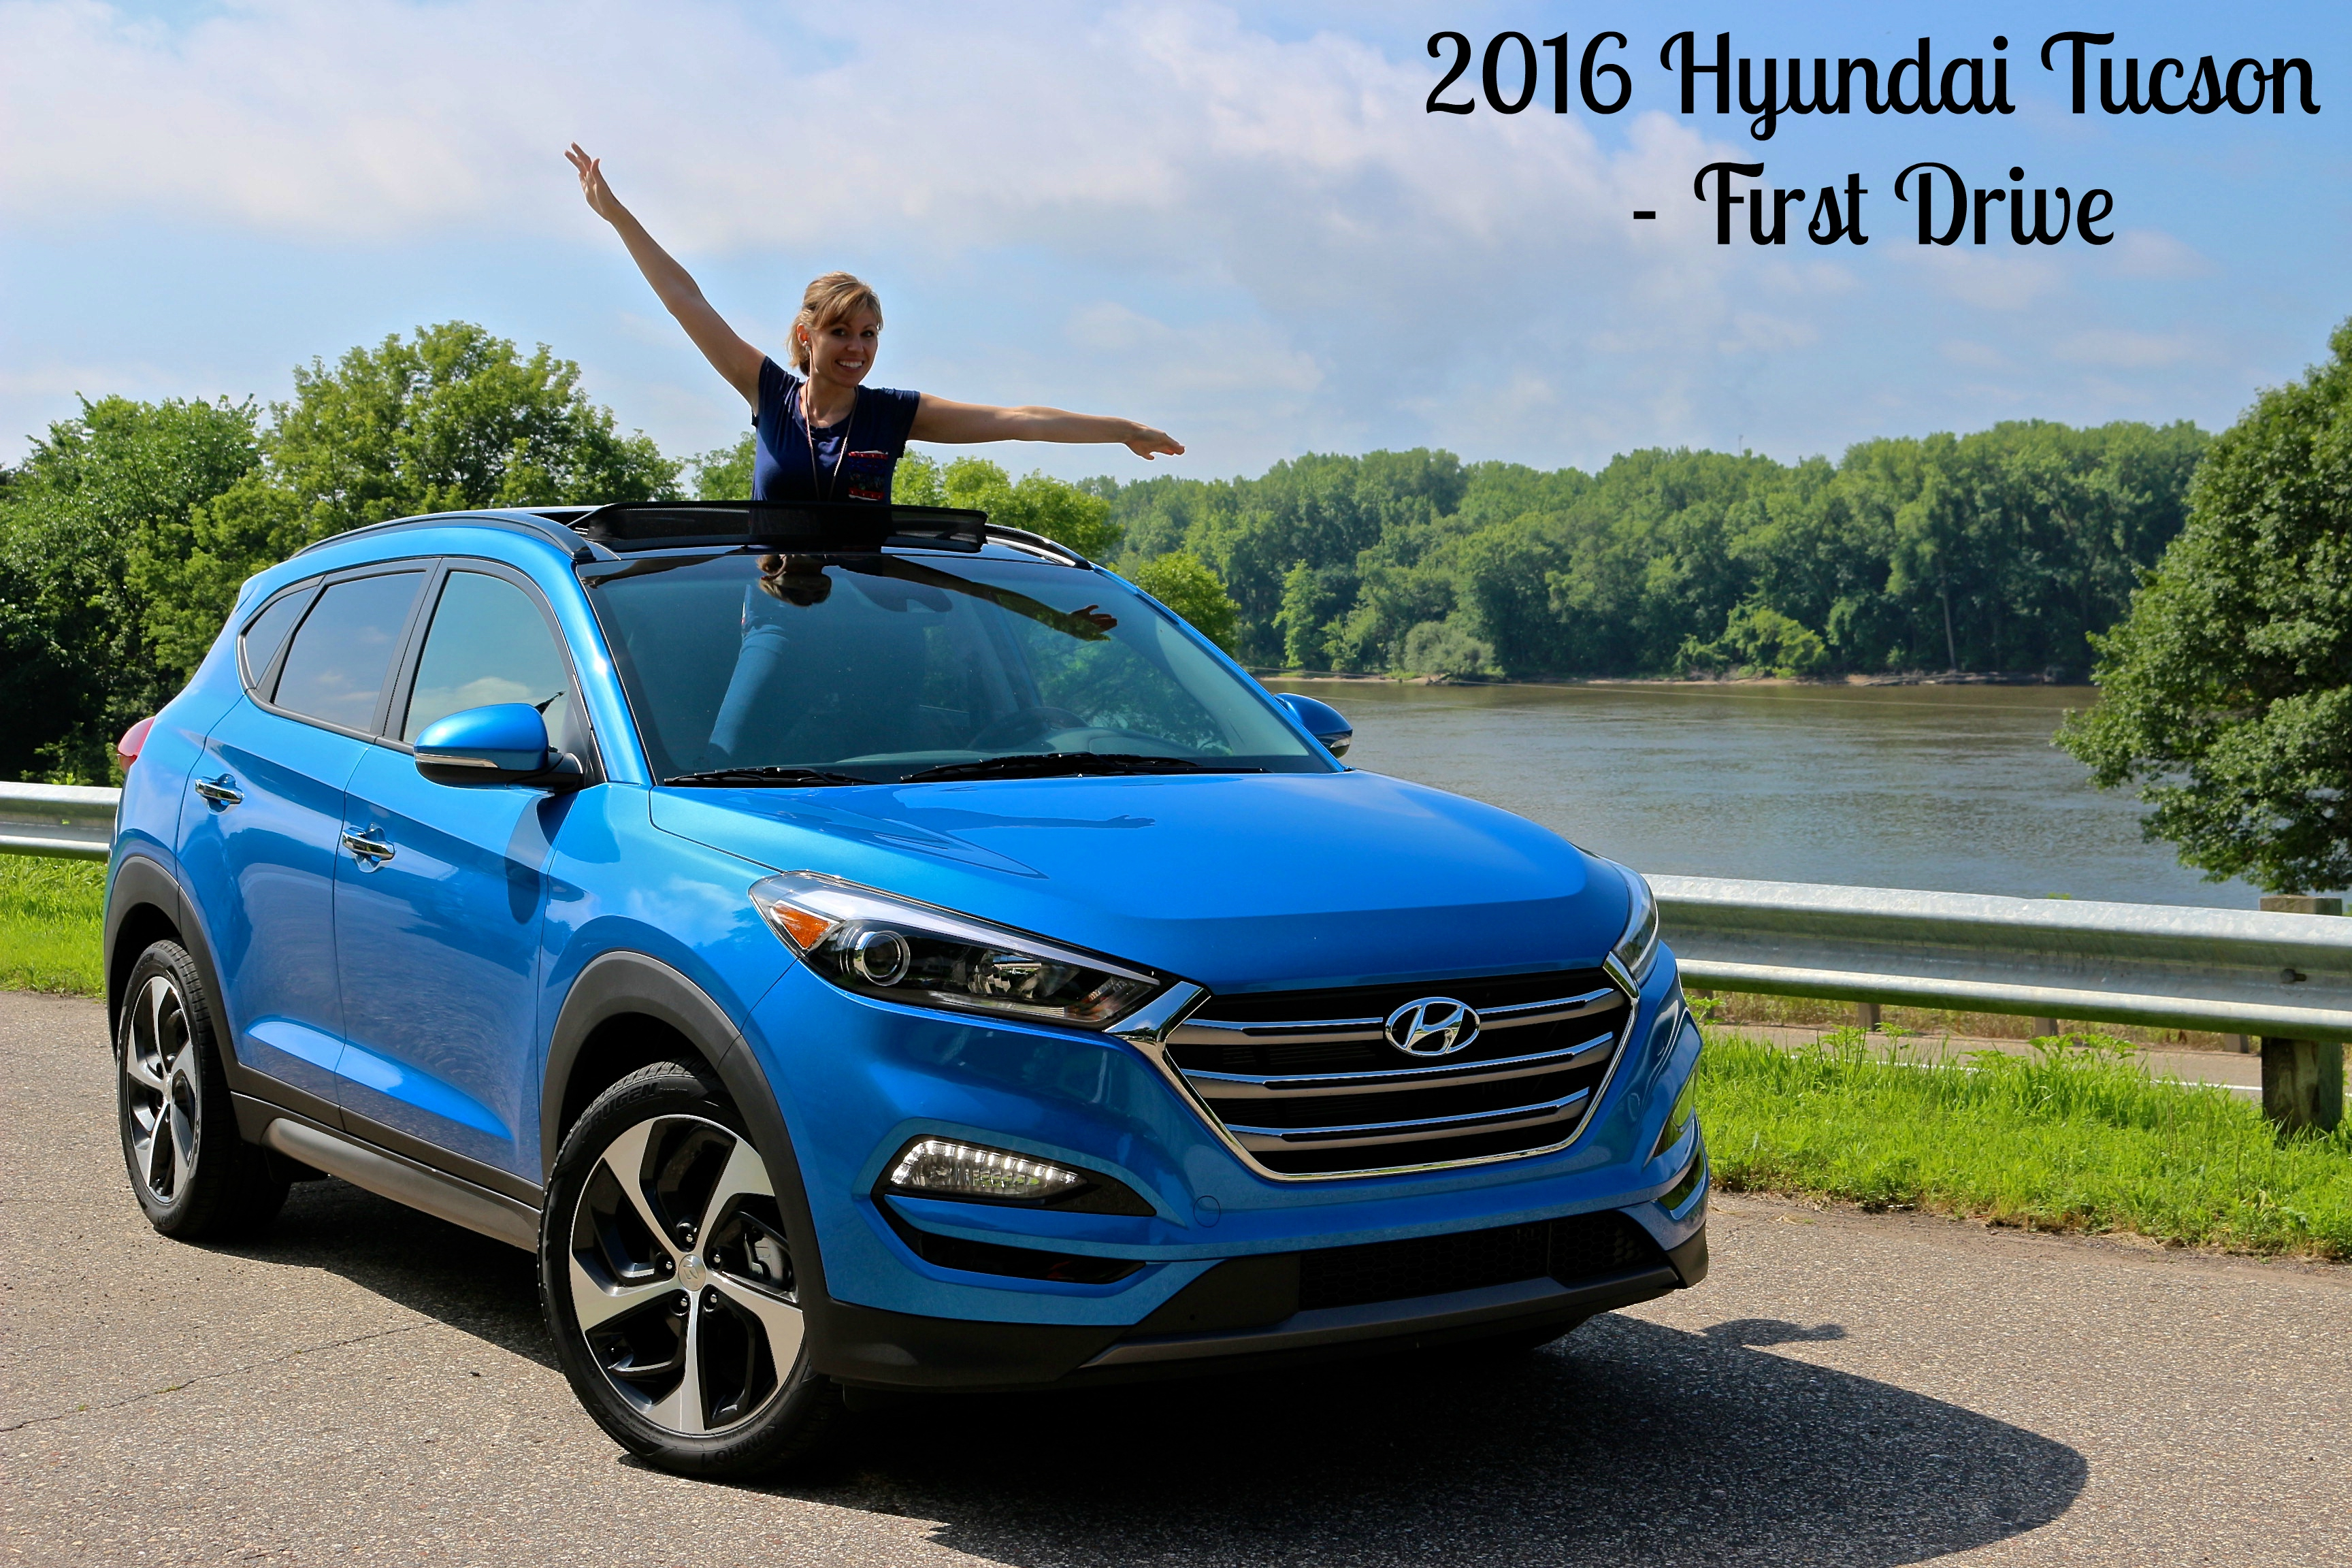 2016 hyundai tucson exterior caribbean blue life is poppin 39. Black Bedroom Furniture Sets. Home Design Ideas